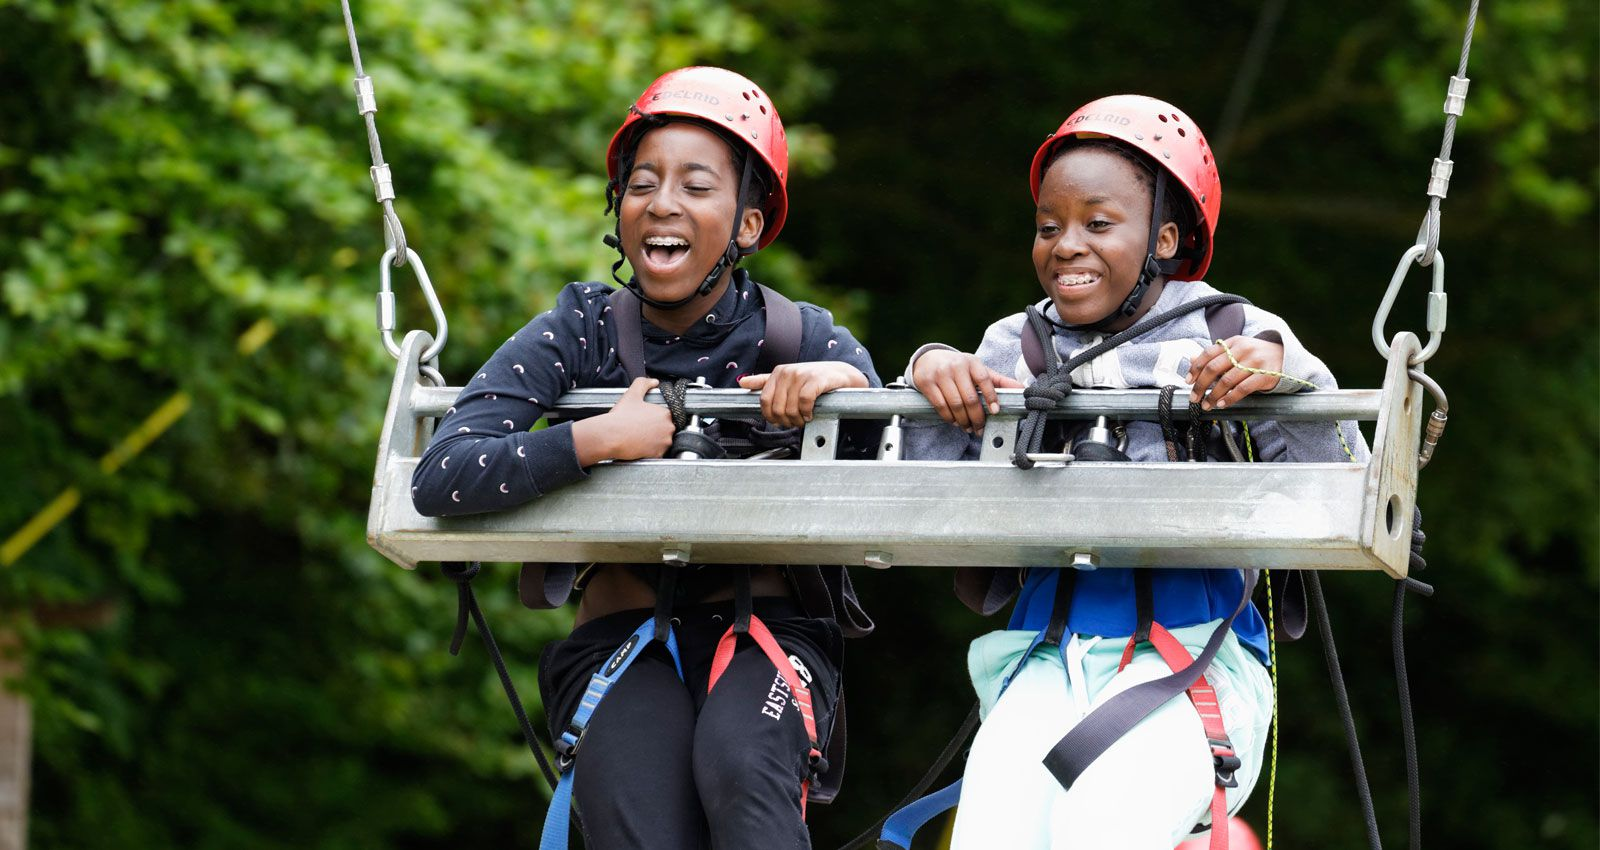 PGL Adventure Holidays - Specialist Holidays for 7-17 year olds across the UK and France - Love to Learn – Wellbeing